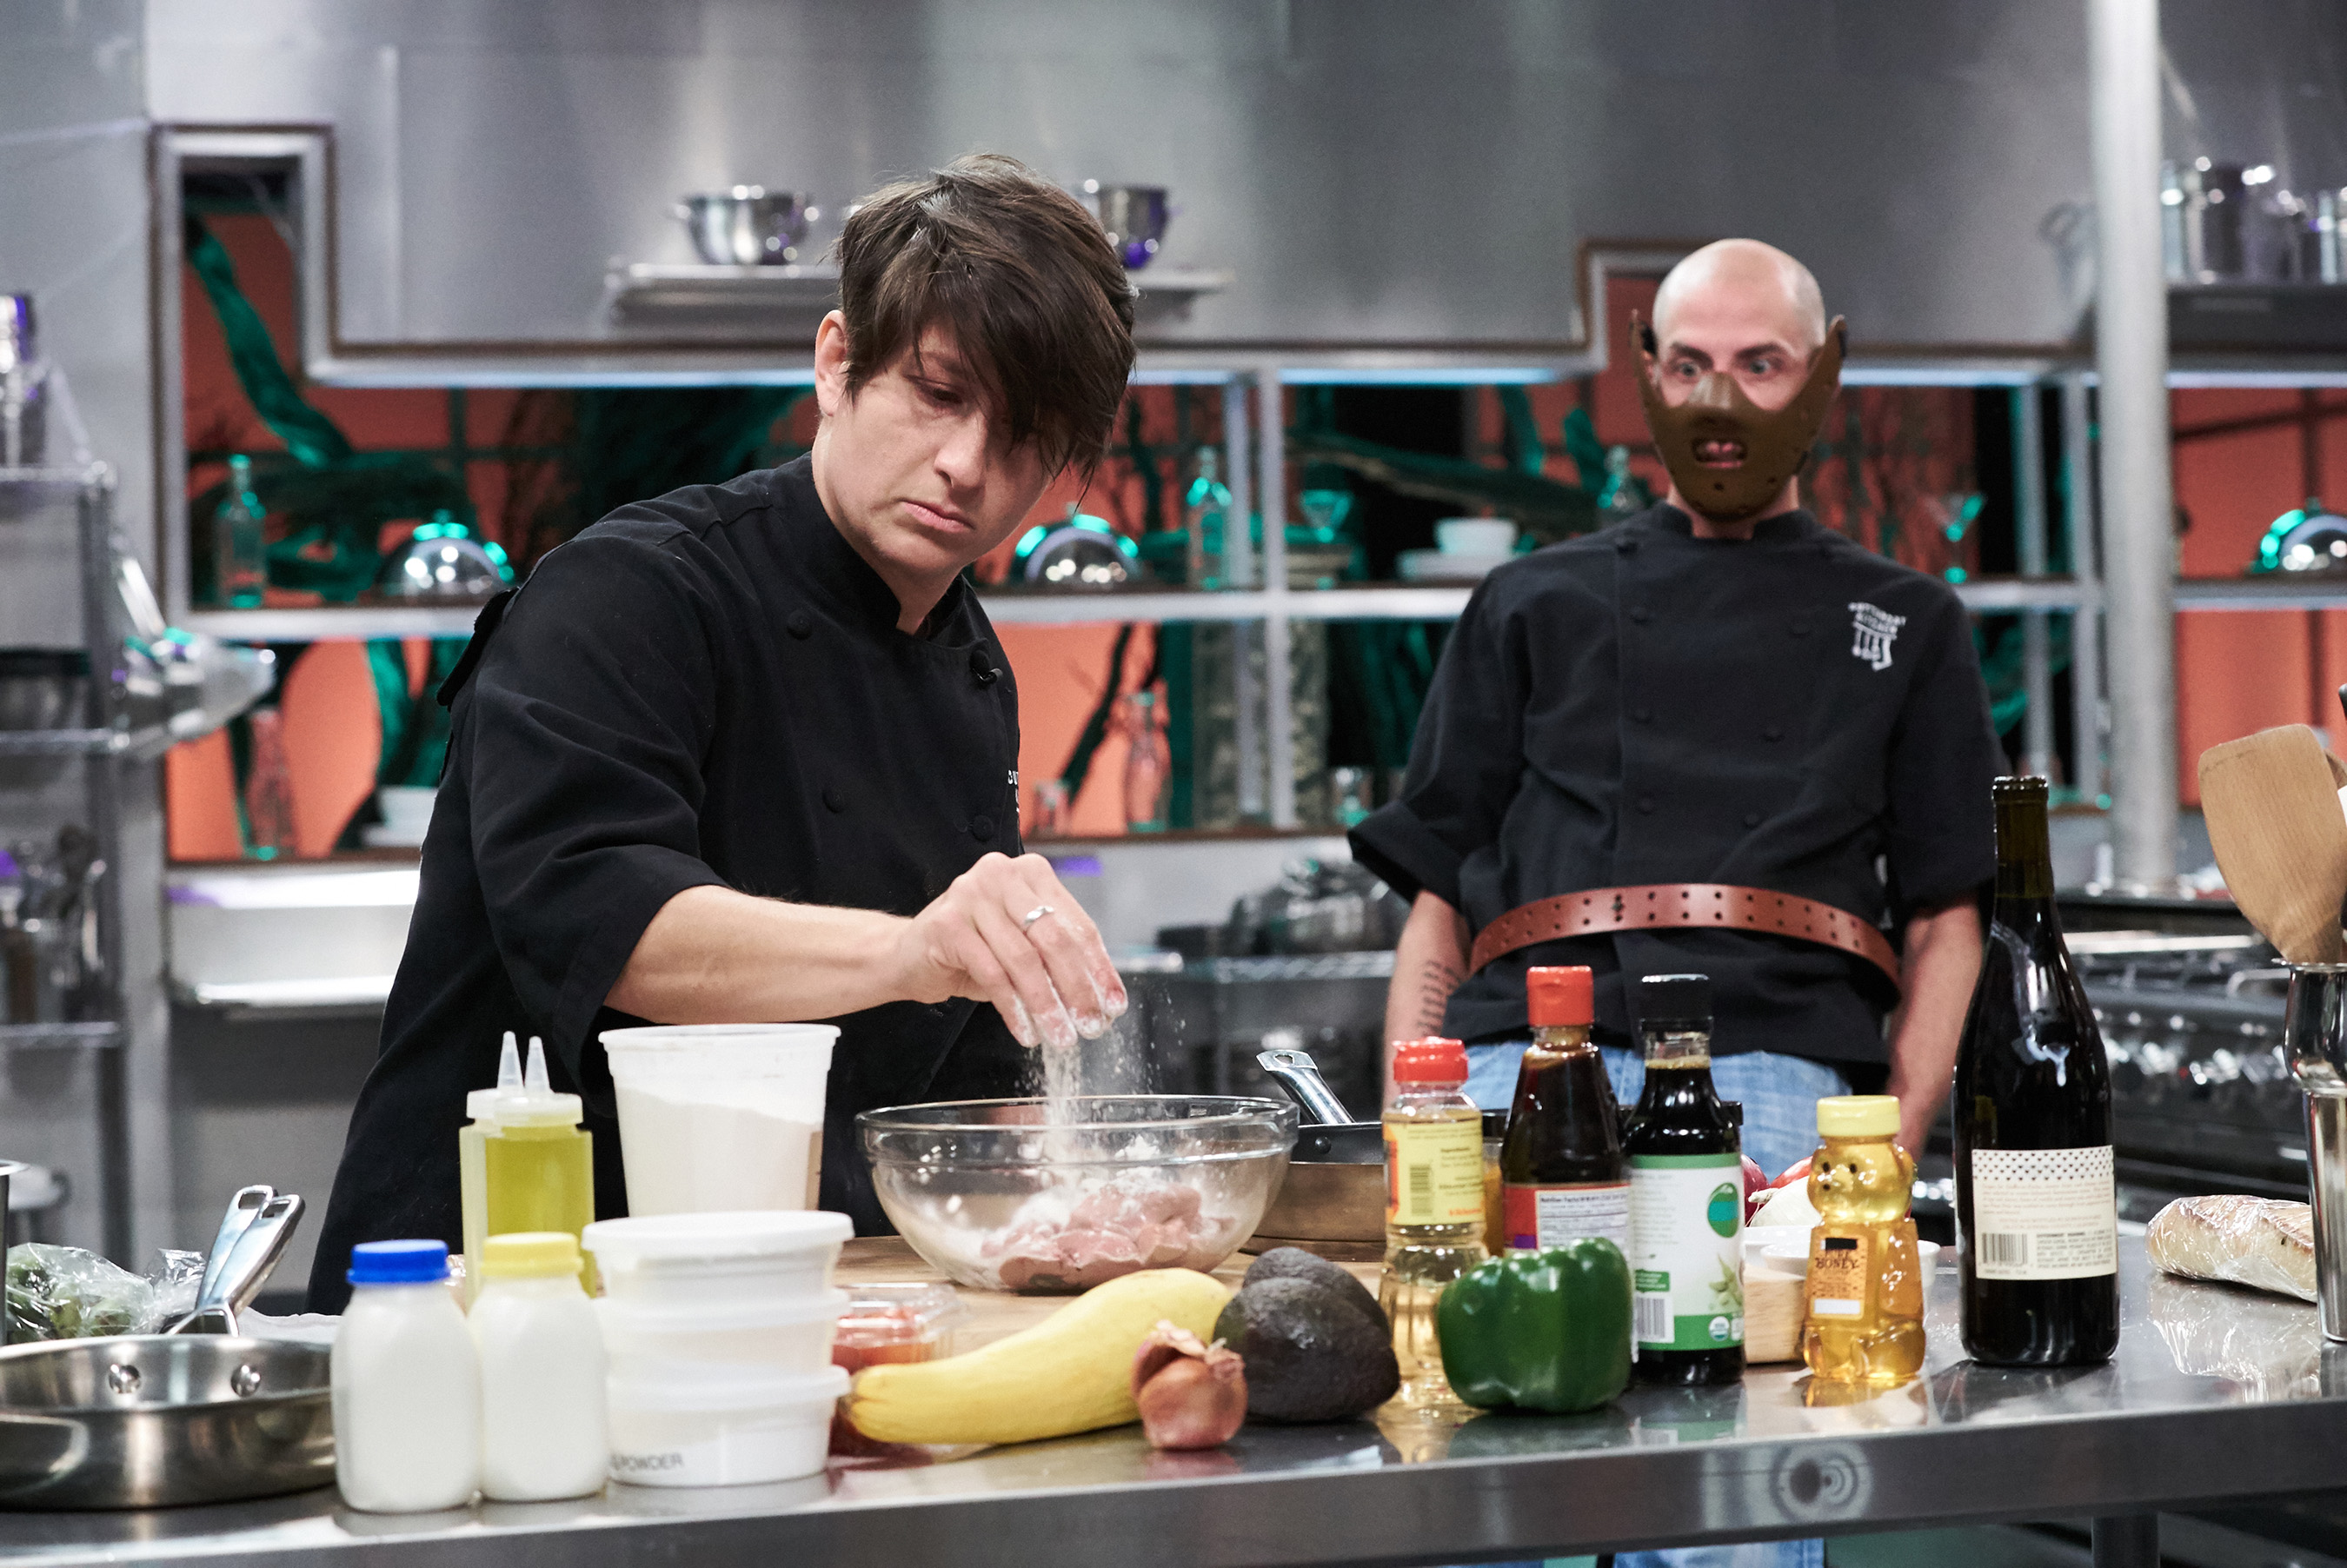 Contestants Rouha Sadighi and Trevor McGrath on Food Network's Cutthroat Kitchen: Tournament of Terror